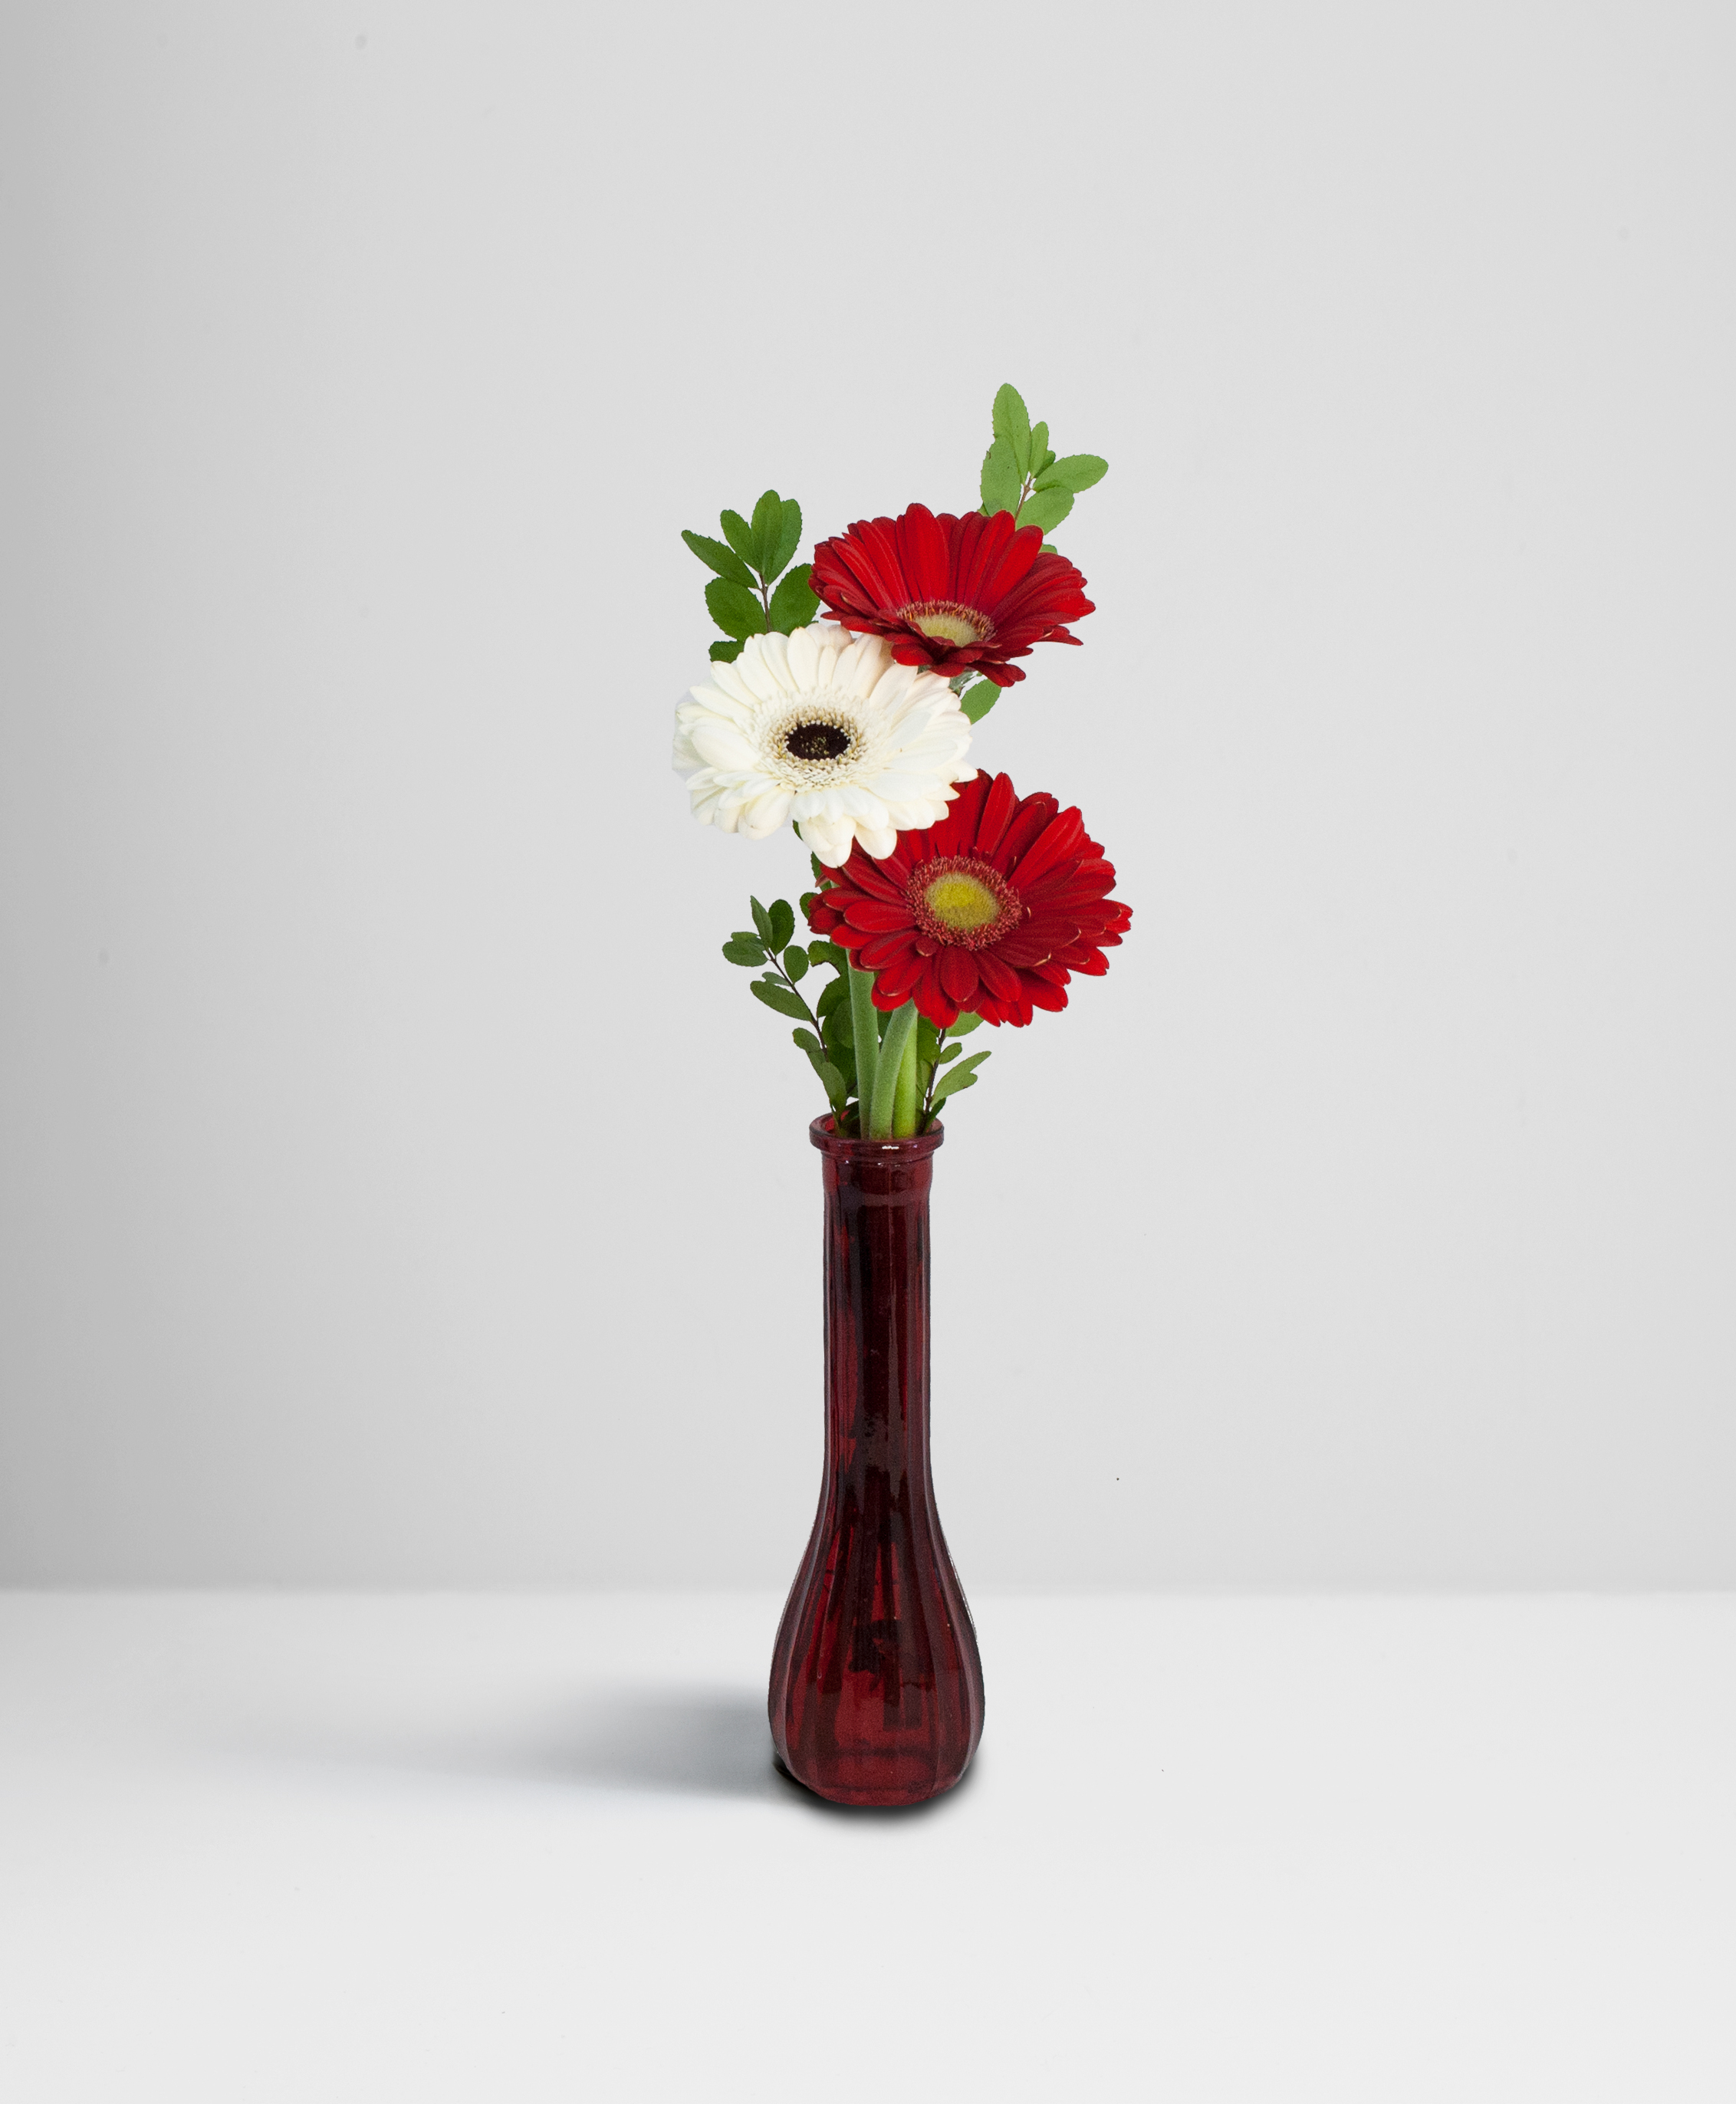 Carambole (Red) & Iceberg (White) Cut Gerbera in Frosted Red Bud Vase